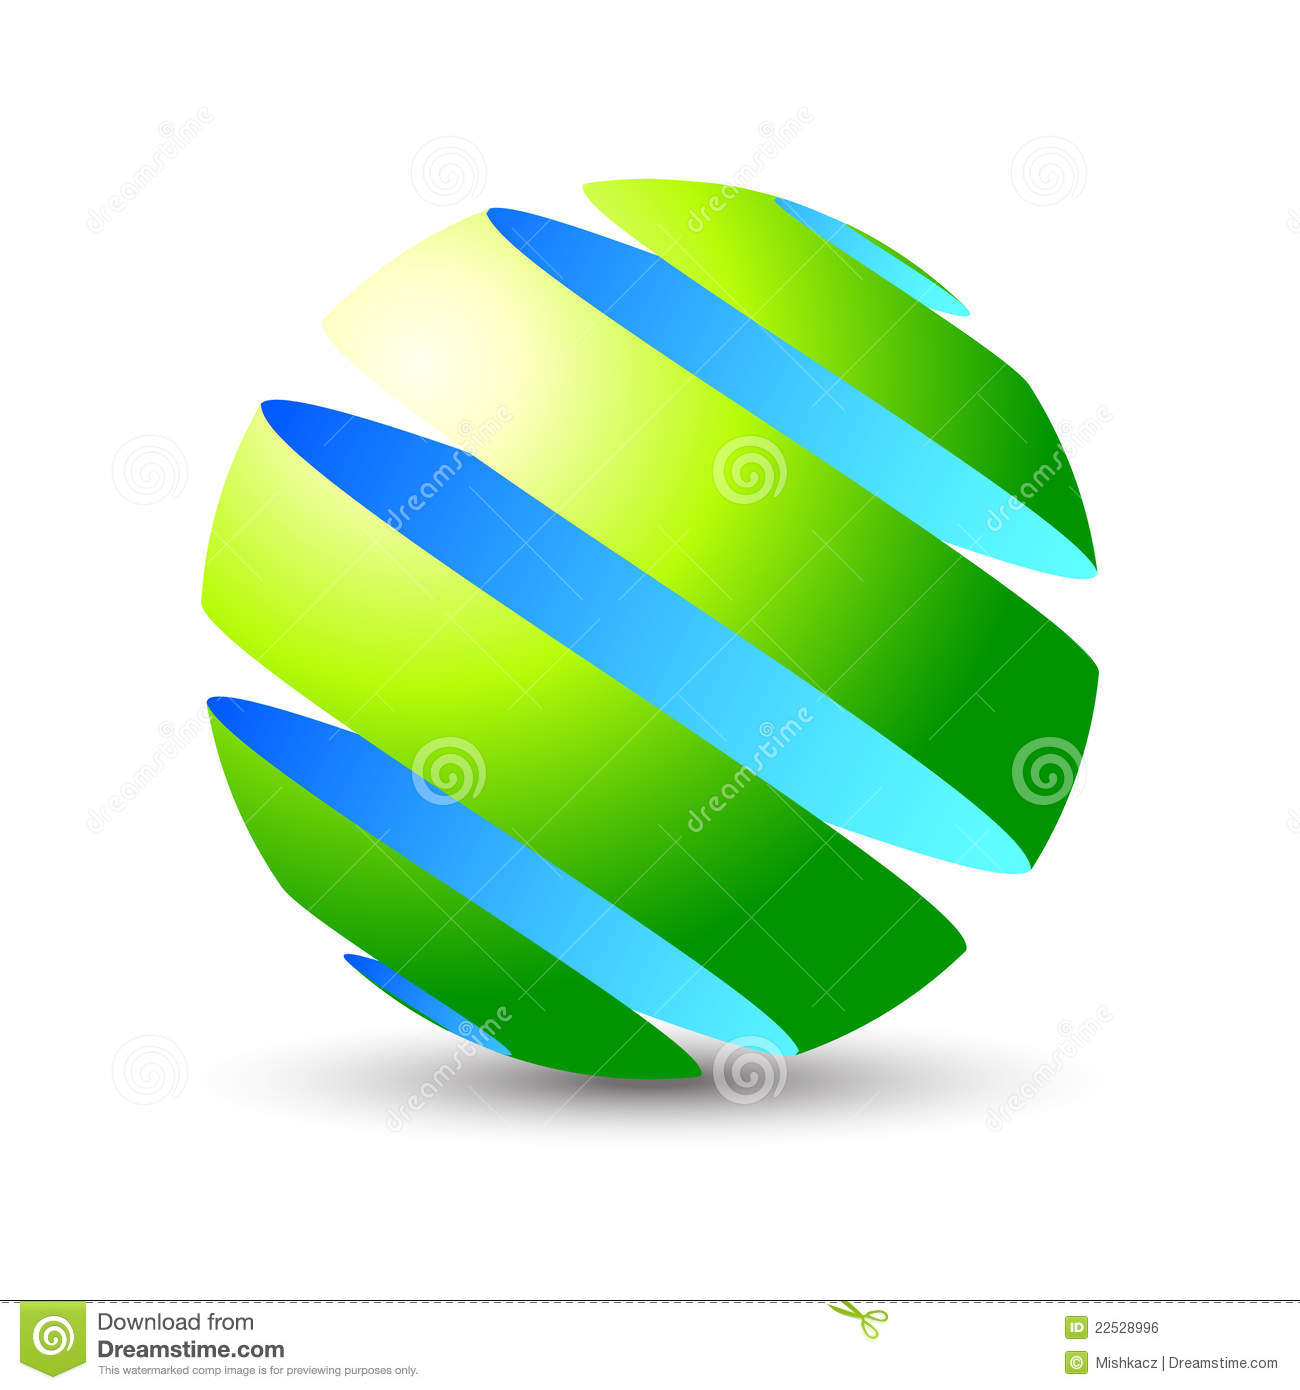 Z 3d Logo Design 3D sphere eco icon and logo